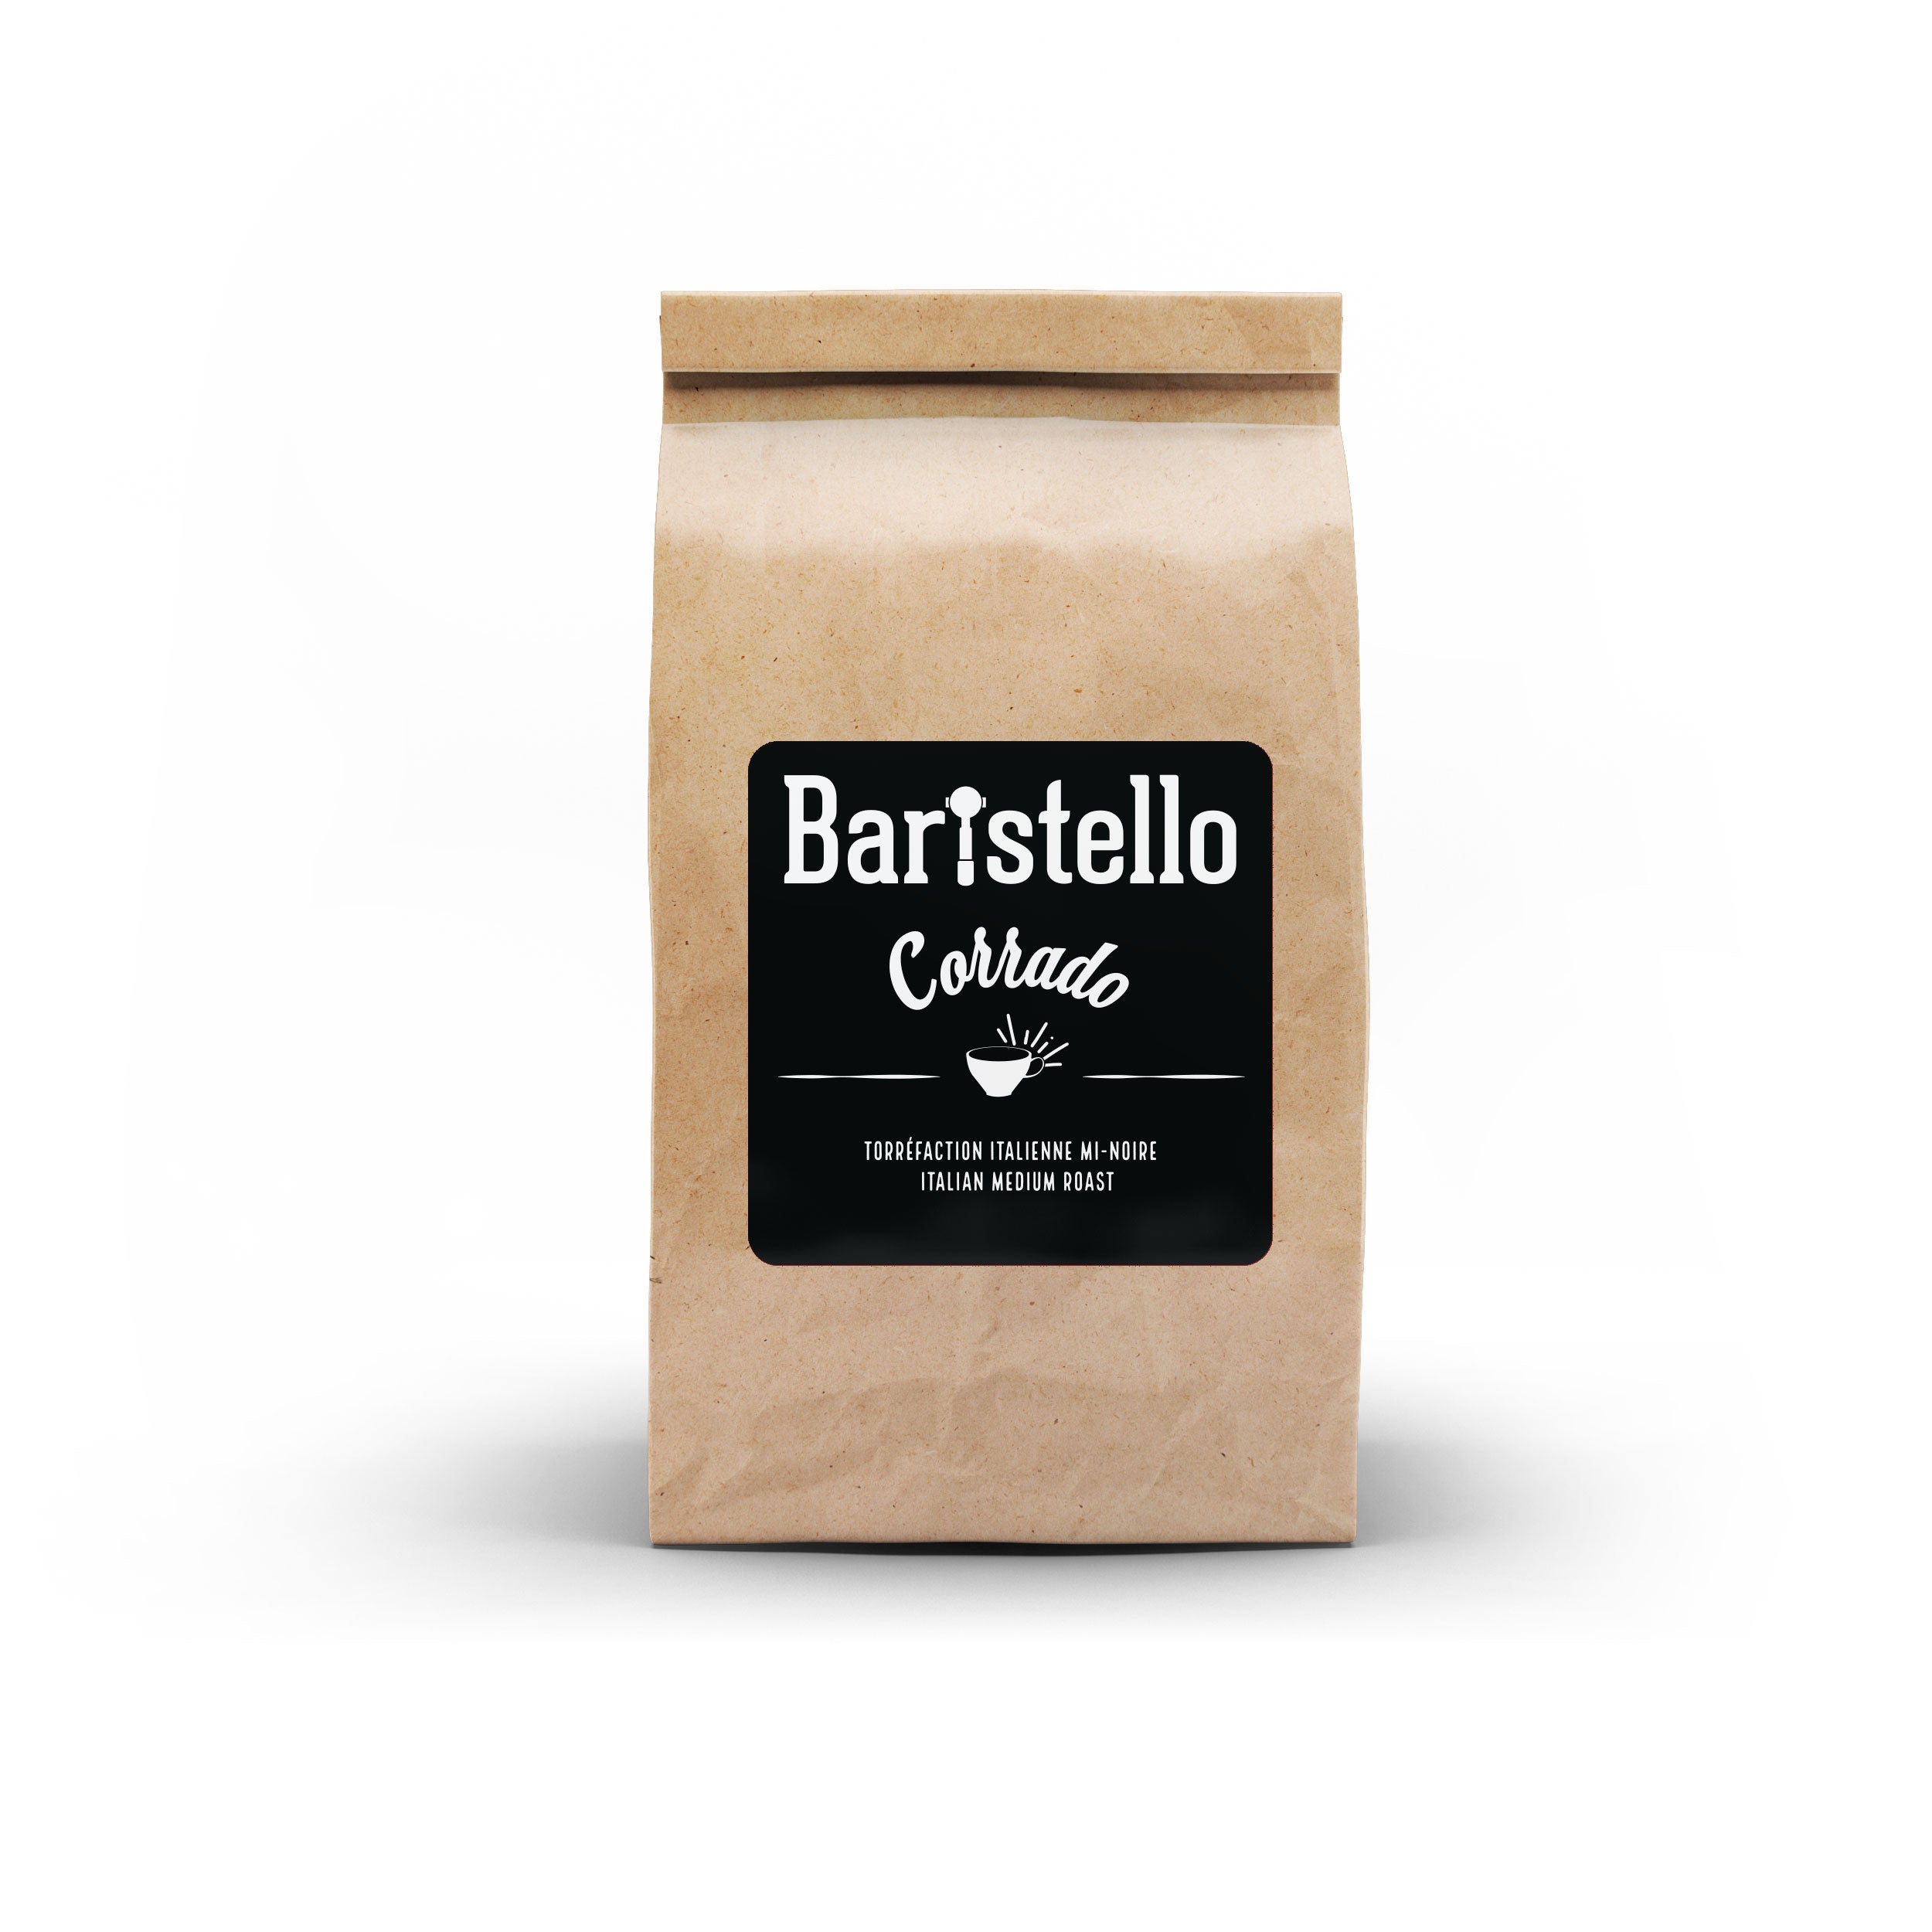 Baristello Corrado Coffee Blend